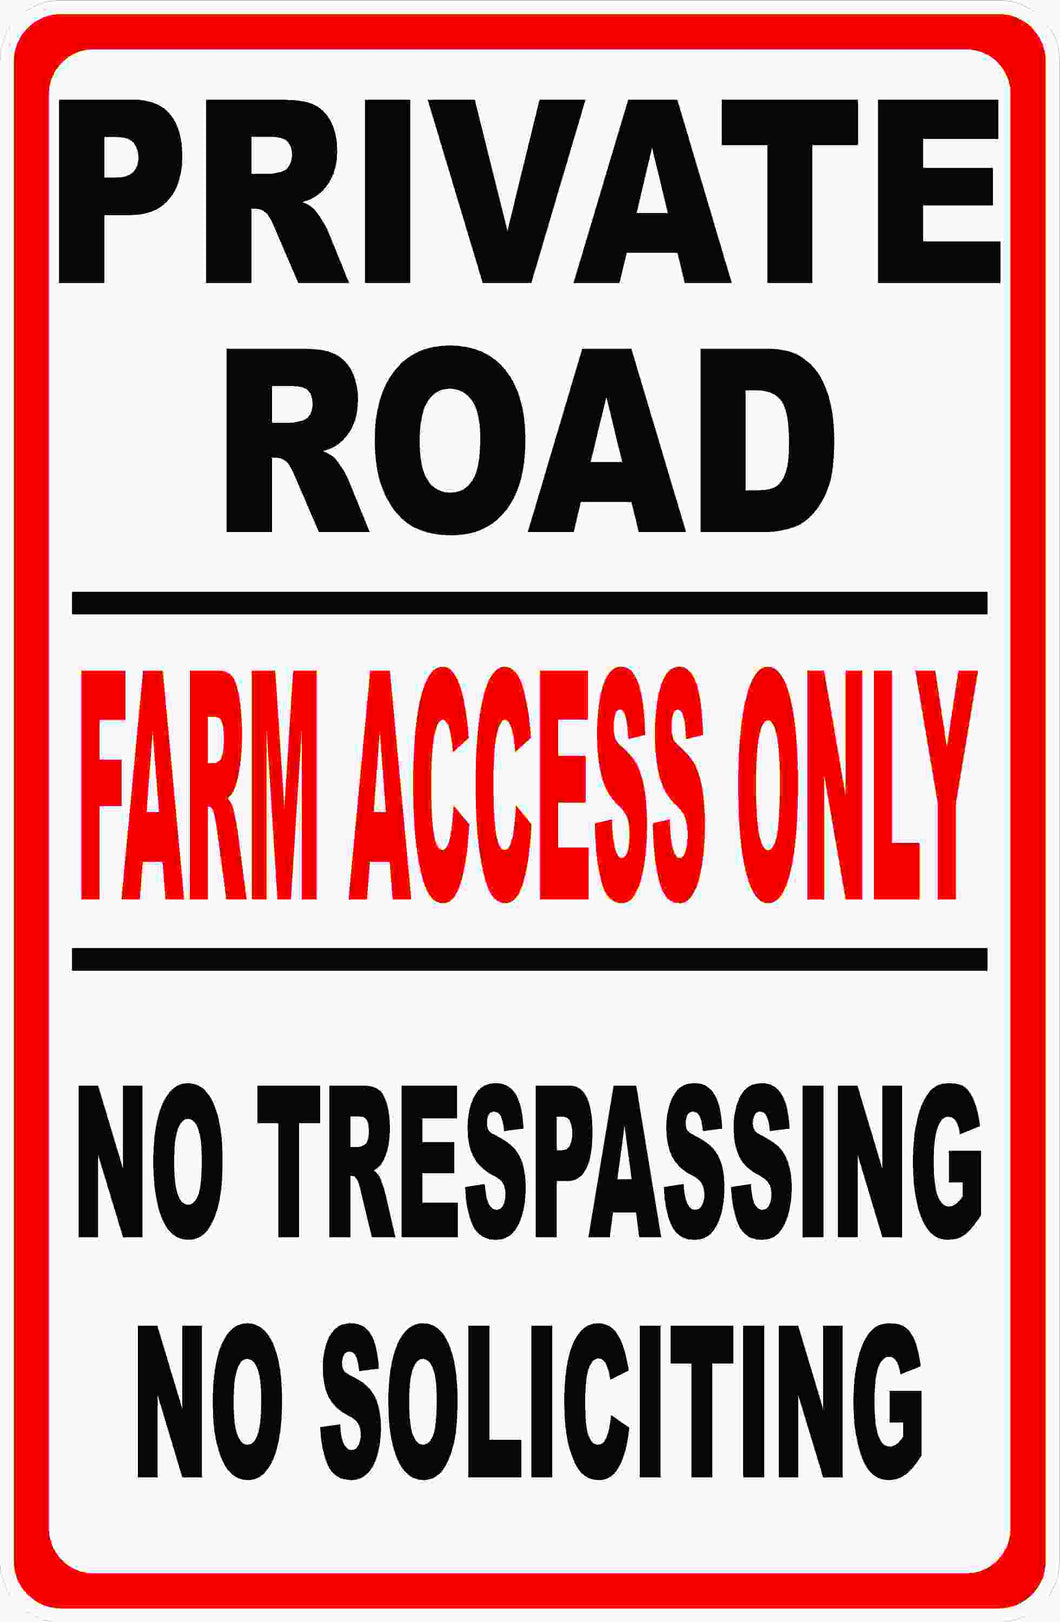 Private Road Farm Access Only Sign